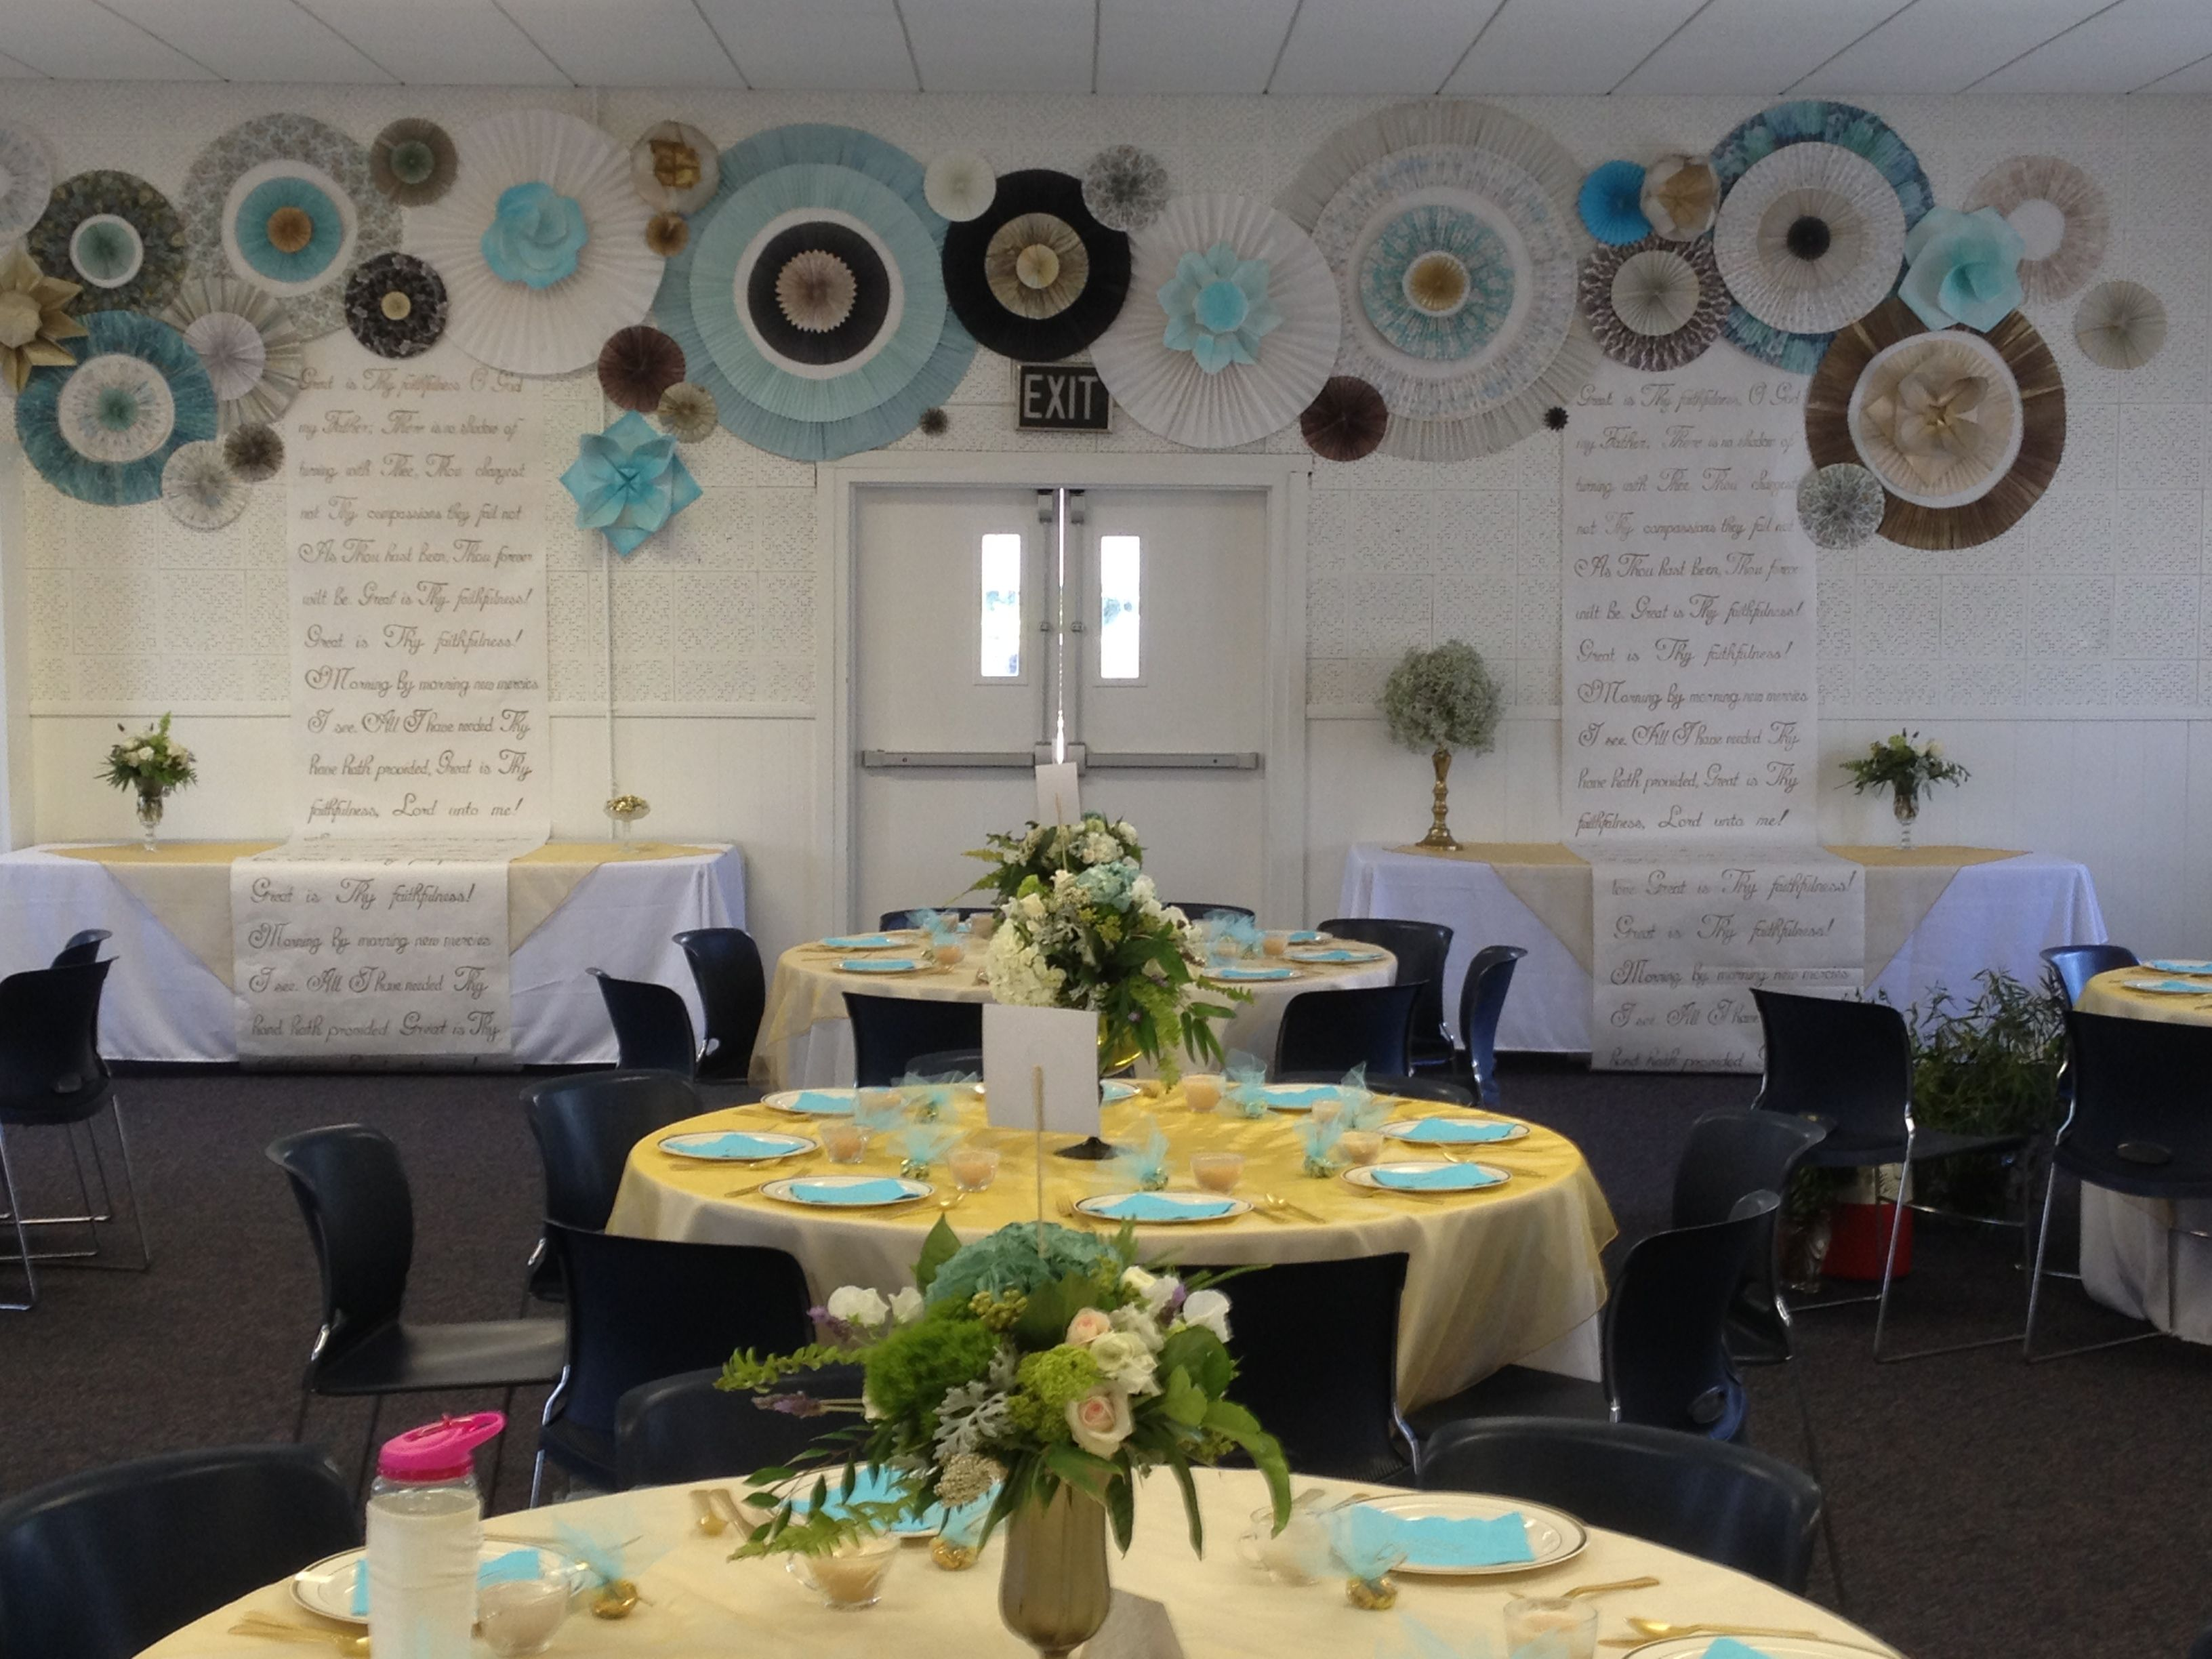 Decorations For A Church S 50th Anniversary Celebration Gold W Turquoise Accents Back Wall Giant Handmade Pinwheels In The Accent Colors